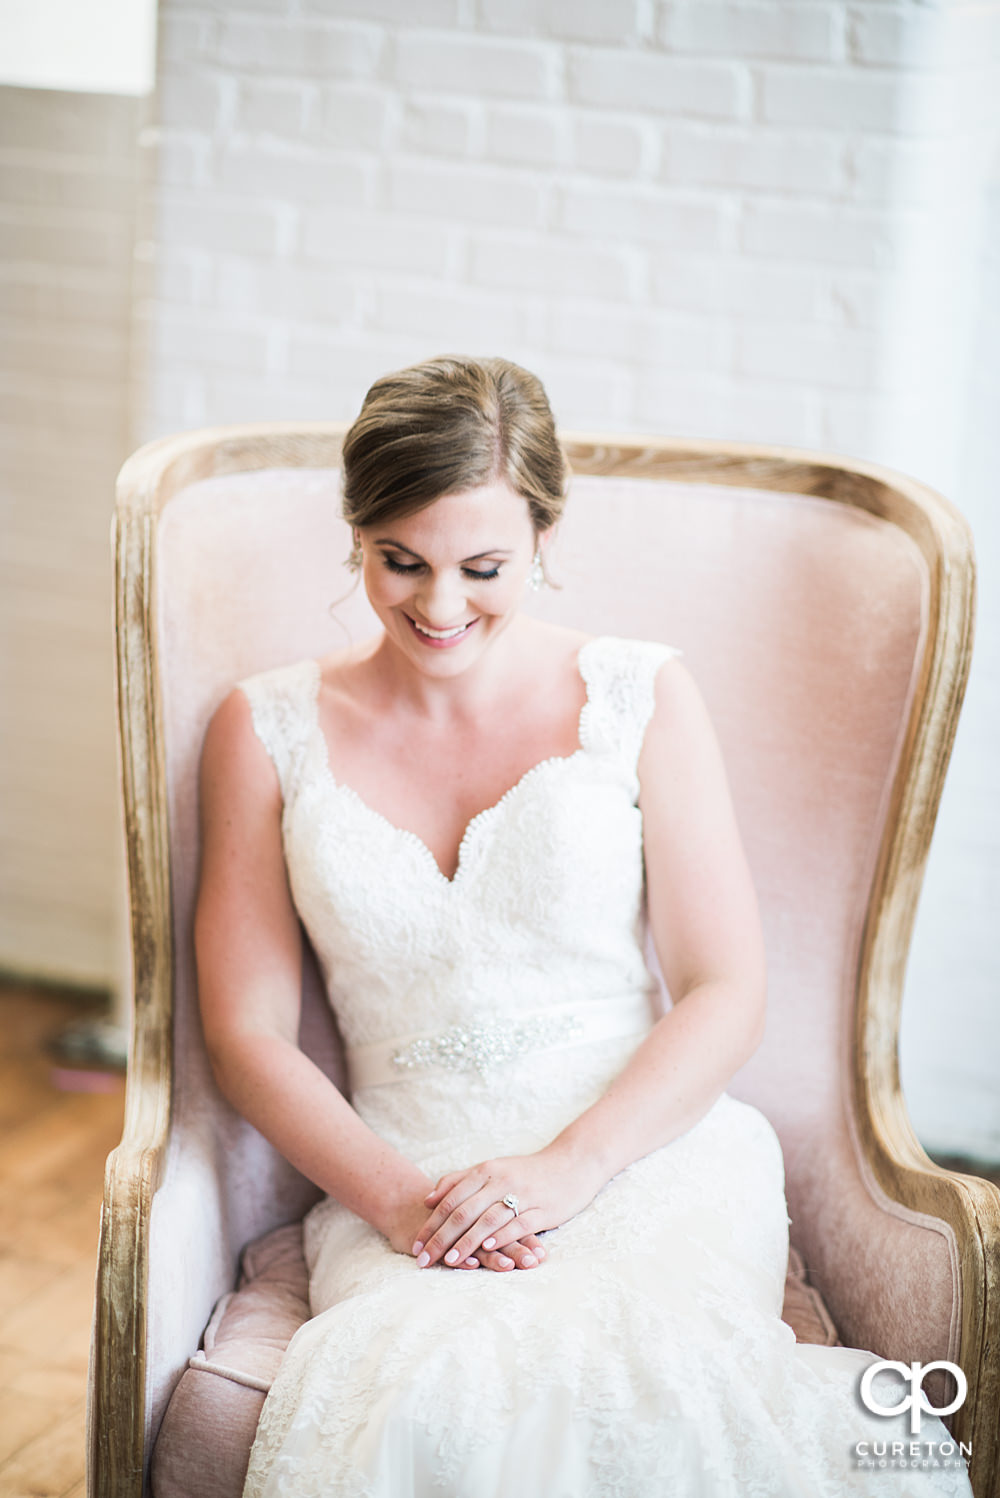 Bride sitting in a chair in the middle of the Southern Bleachery wedding venue.